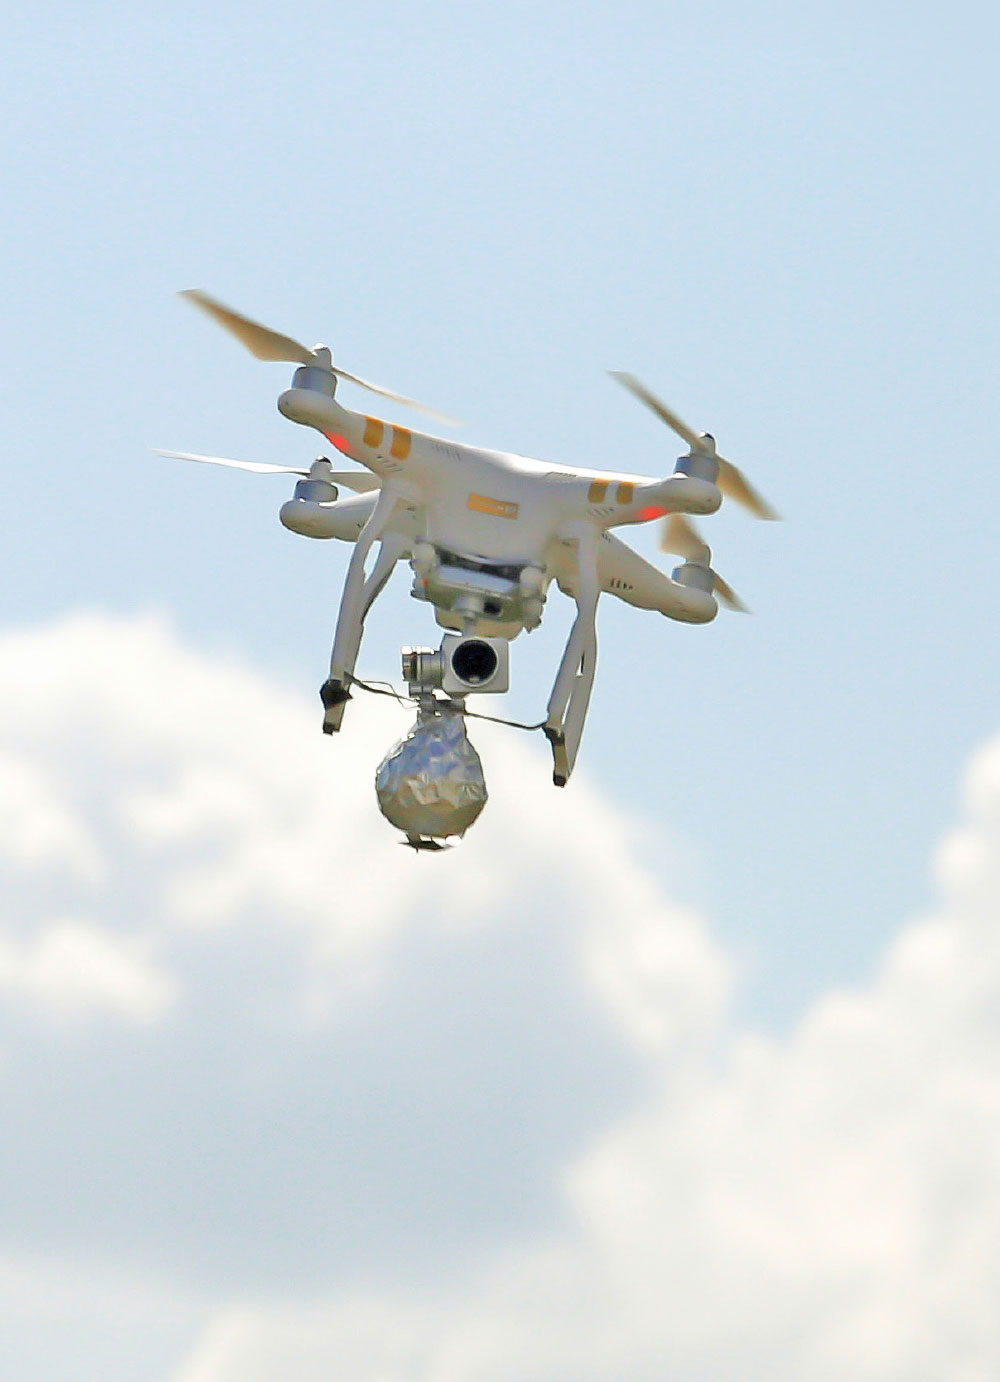 Addressing UAVs and Anti-Drone Technology with a Multi-Pronged Response